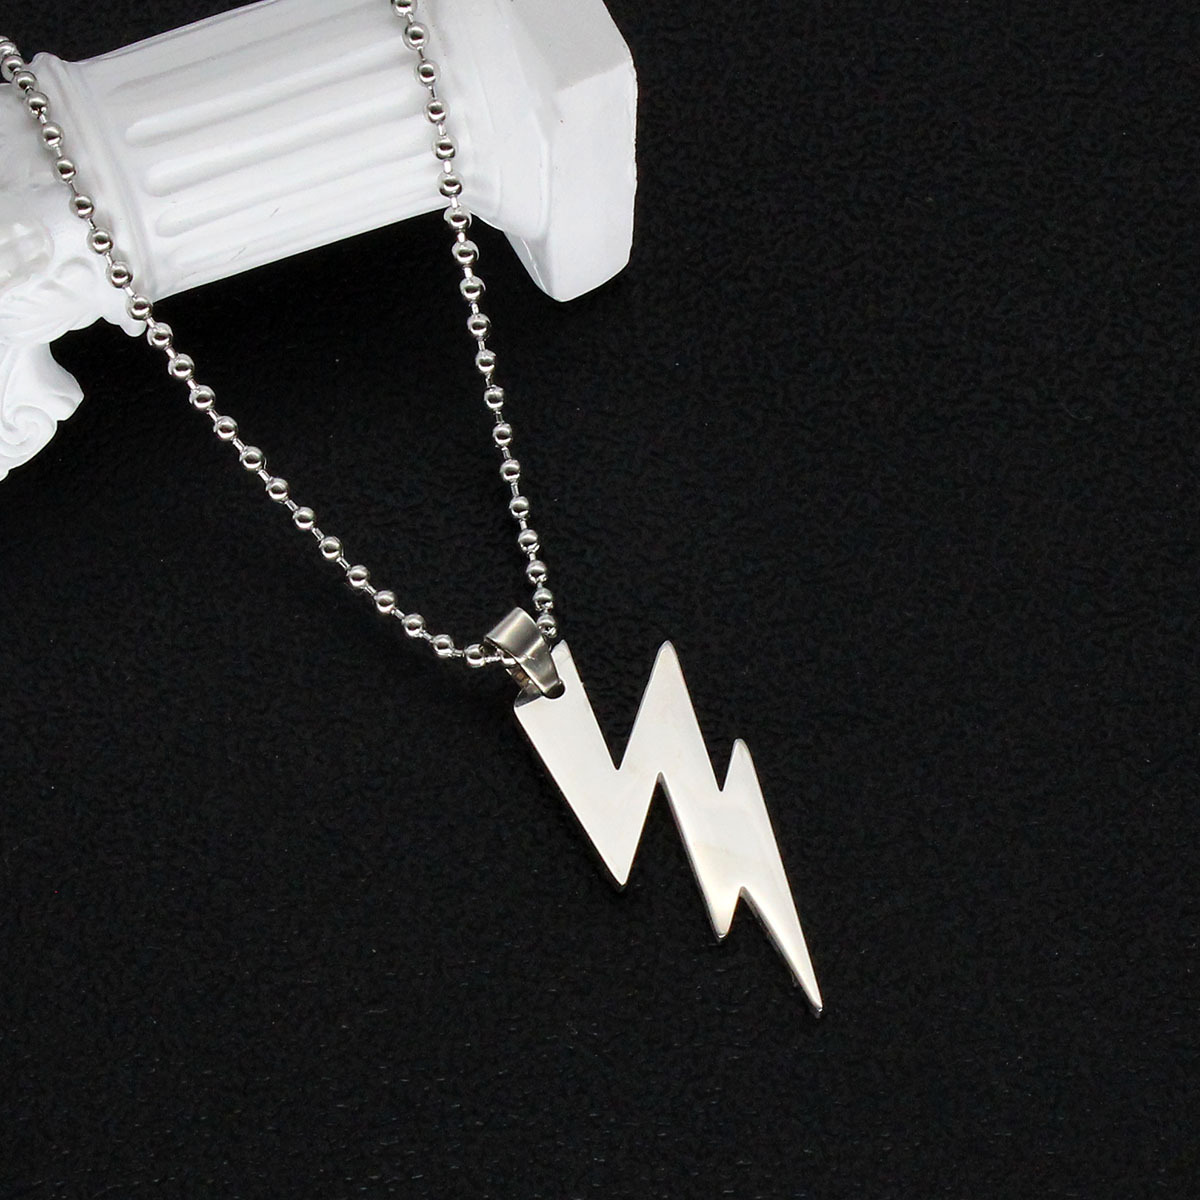 Unisex Stainless Steel Lightning Pendant Necklace for Cool Fashion Outfits